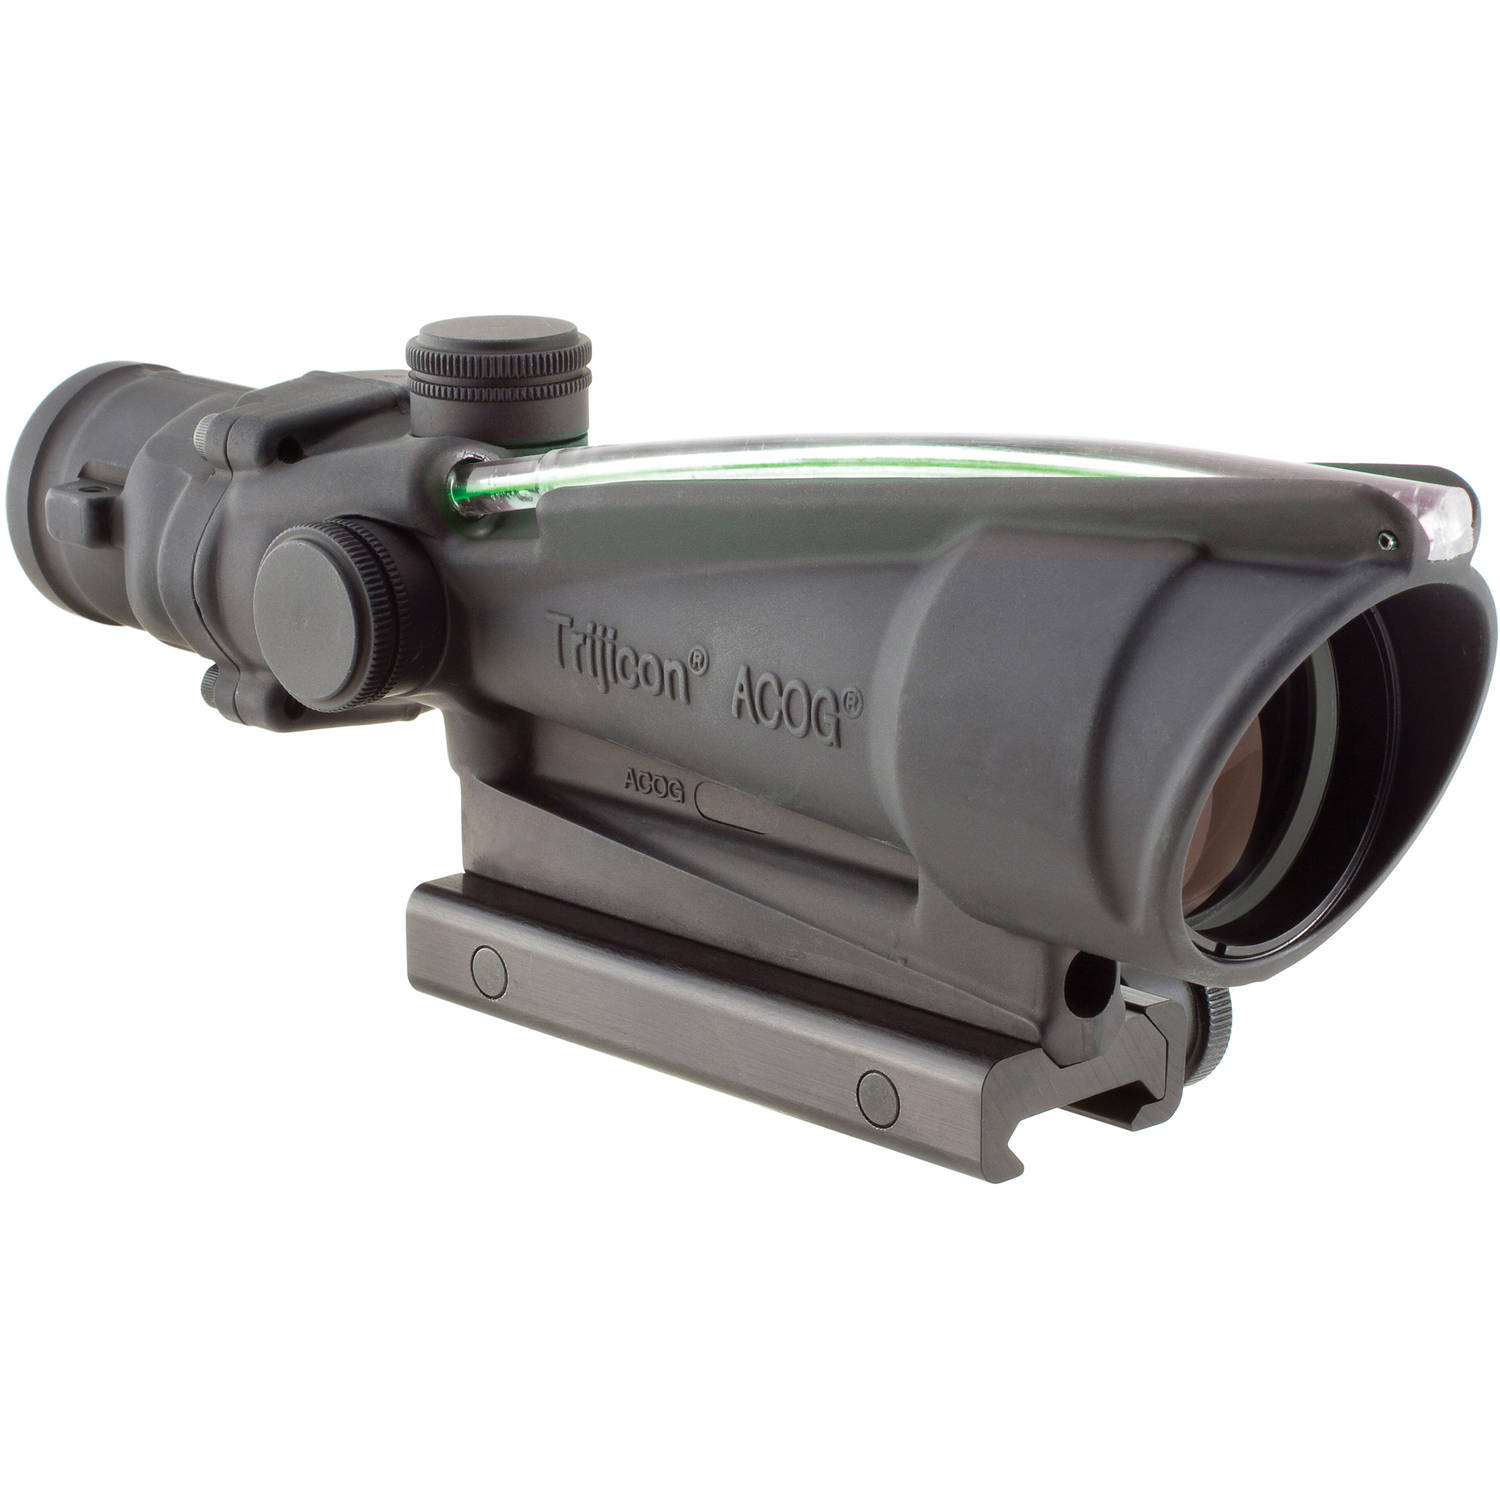 Trijicon ACOG Rifle Scope, 3.5X 35, Green Horseshoe .308 Reticle with TA51 Mount, Matte by Trijicon